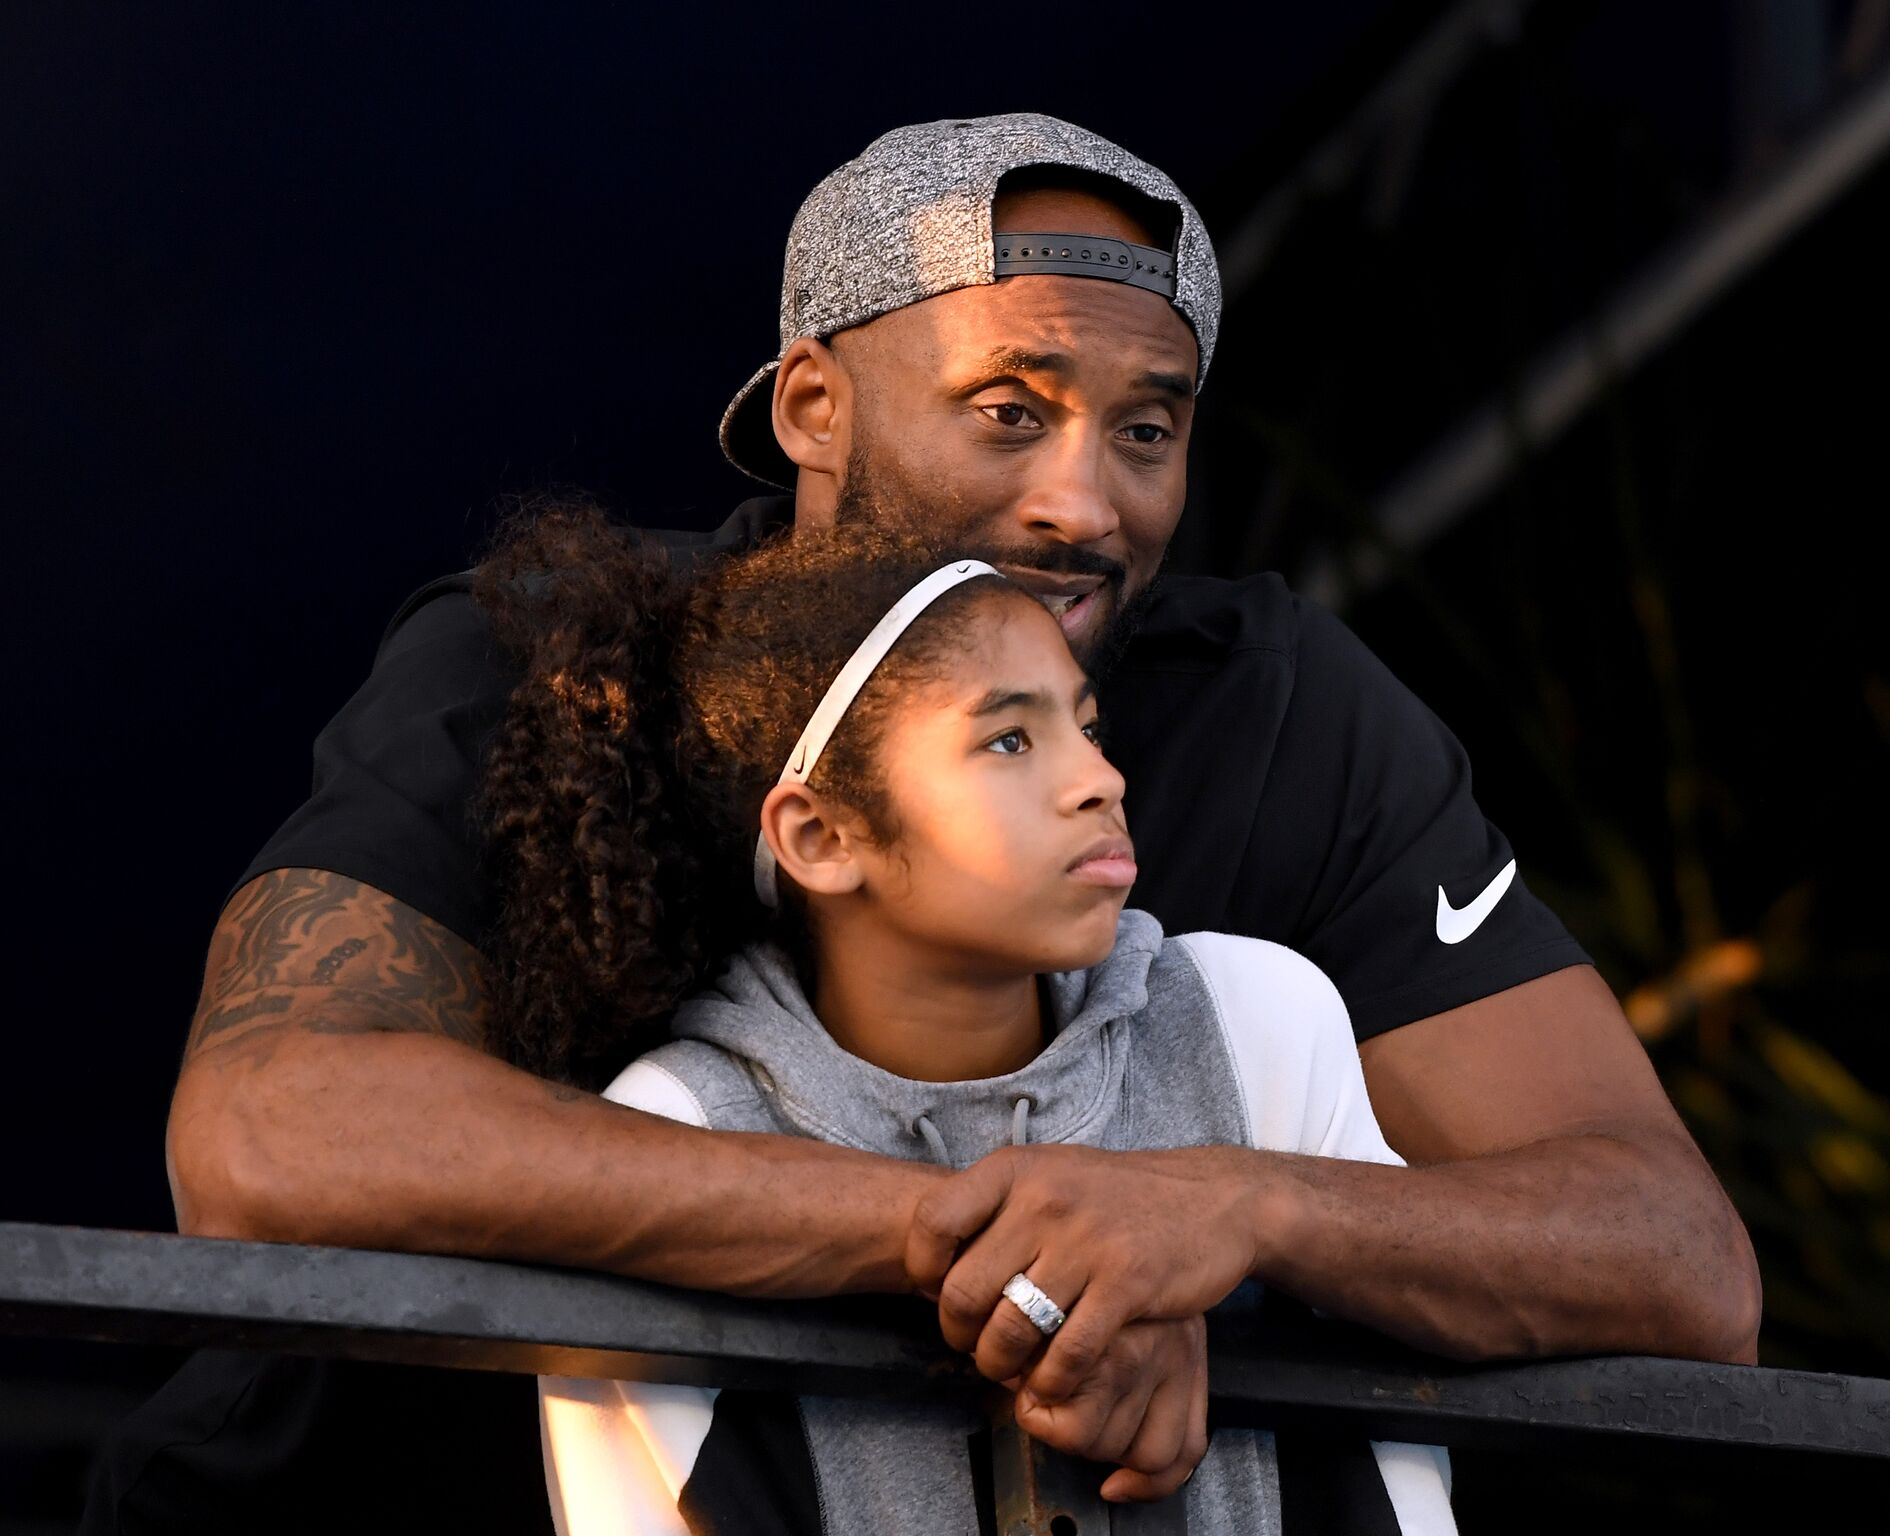 Kobe Bryant and daughter Gianna Bryant watch during day 2 of the Phillips 66 National Swimming Championships at the Woollett Aquatics Center on July 26, 2018 | Photo: Getty Images